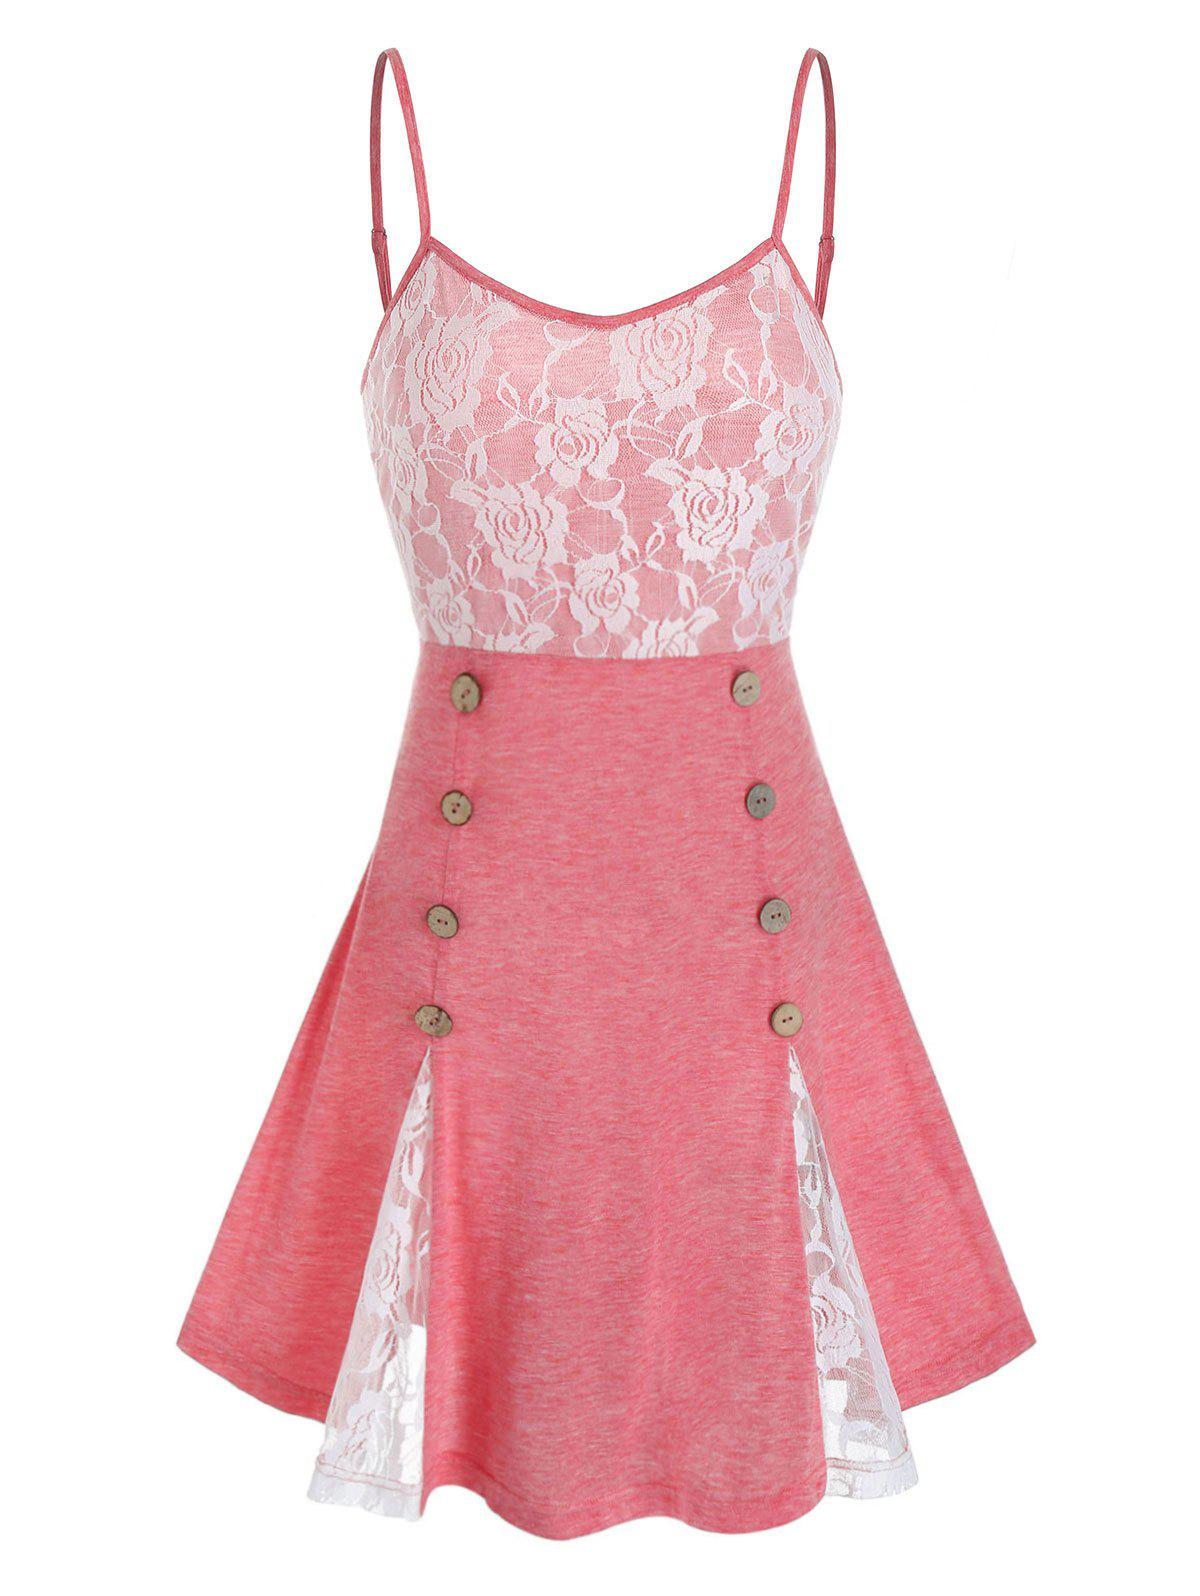 Chic Lace Panel Sailor Buttons Backless Cami Top